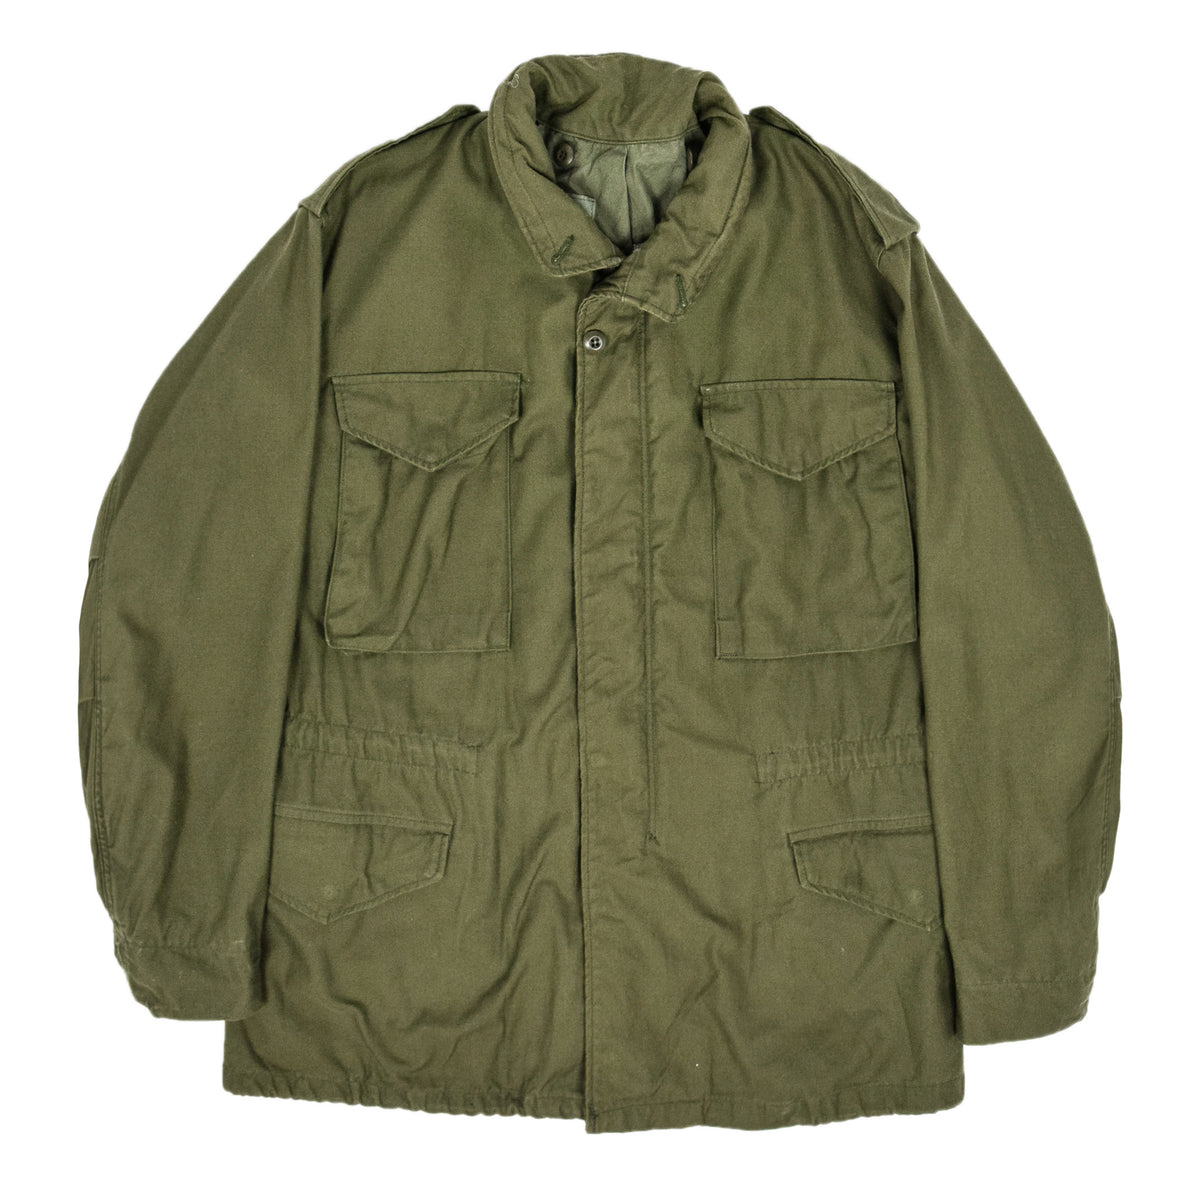 Vintage 80s M-65 Man's Field Cotton Sateen 0G-107 Green US Army Coat M front